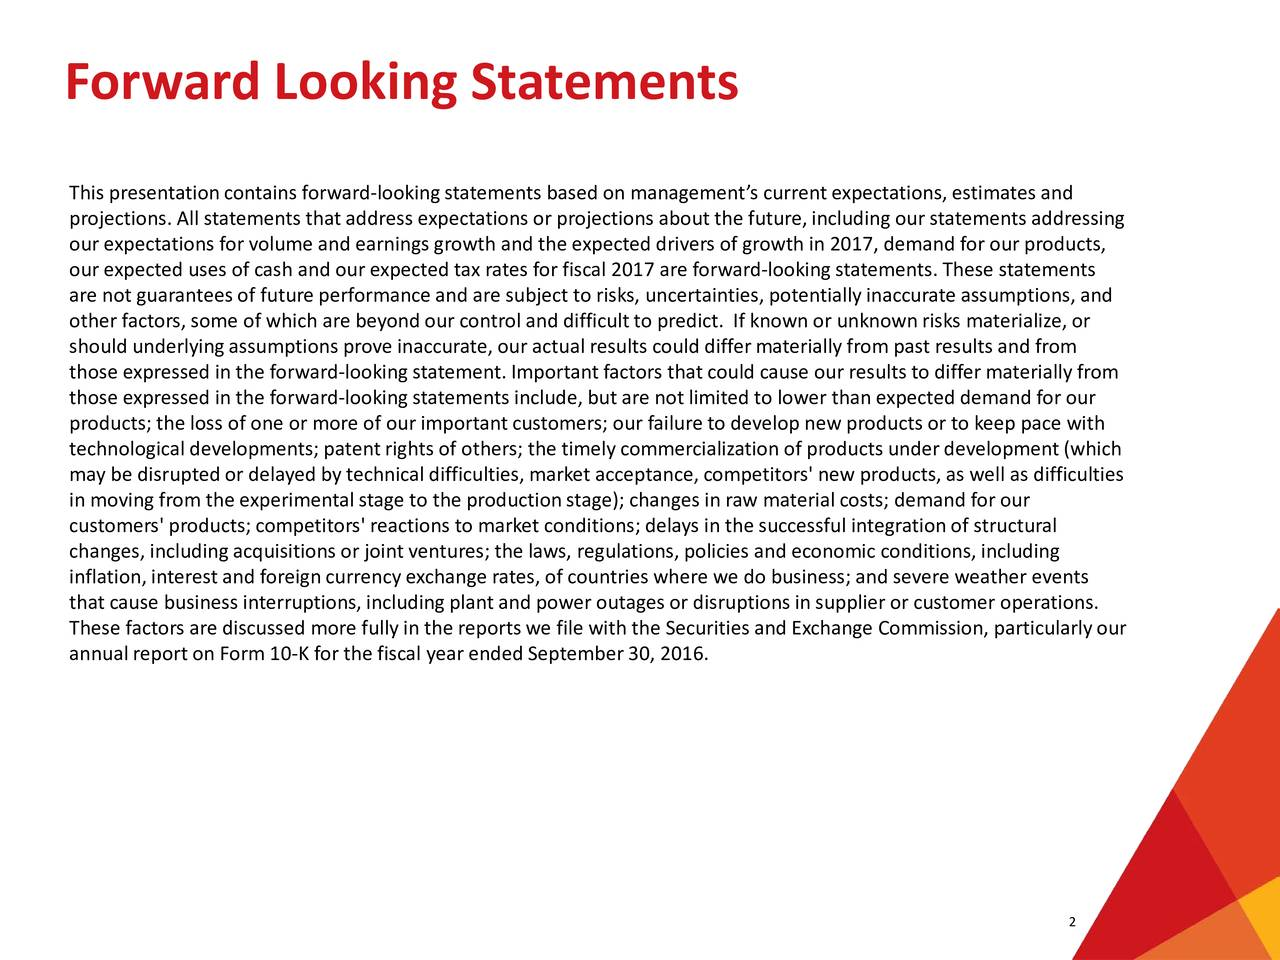 This presentation containsforward-lookingstatements based on managements current expectations, estimates and projections. All statements that address expectations or projections about the future, including our statements addressing our expectations for volume and earnings growth and the expected drivers of growth in 2017, demand for our products, our expected uses of cash and our expected tax rates for fiscal 2017 are forward-looking statements.These statements are not guarantees of future performance and are subject to risks, uncertainties, potentially inaccurate assumptions, and other factors, some of which are beyond our control and difficultto predict. If known or unknown risks materialize, or should underlying assumptions prove inaccurate, our actual results could differ materially from past results and from those expressed in the forward-looking statement. Importantfactors that could cause our results to differ materially from those expressed in the forward-looking statements include, but are not limited tolower than expected demand for our products; the loss of one or more of our important customers; our failure to develop new products or to keep pace with technological developments; patentrights of others; the timely commercialization of products underdevelopment (which may be disrupted or delayed by technical difficulties, market acceptance, competitors' new products, as well as difficulties in moving from the experimental stage to the production stage); changes in raw material costs; demand for our customers' products; competitors' reactions to market conditions; delays in the successful integrationof structural changes, including acquisitions or joint ventures; the laws, regulations, policies and economic conditions, including inflation, interest and foreign currency exchange rates, of countries where we do business; and severe weather events that cause business interruptions, including plant and power outages or disruptions in supplier or customeroperations. These factors are discussed more fully in the reports we file with the Securities and Exchange Commission, particularly our annual report on Form10-K for the fiscal year ended September 30, 2016. 2